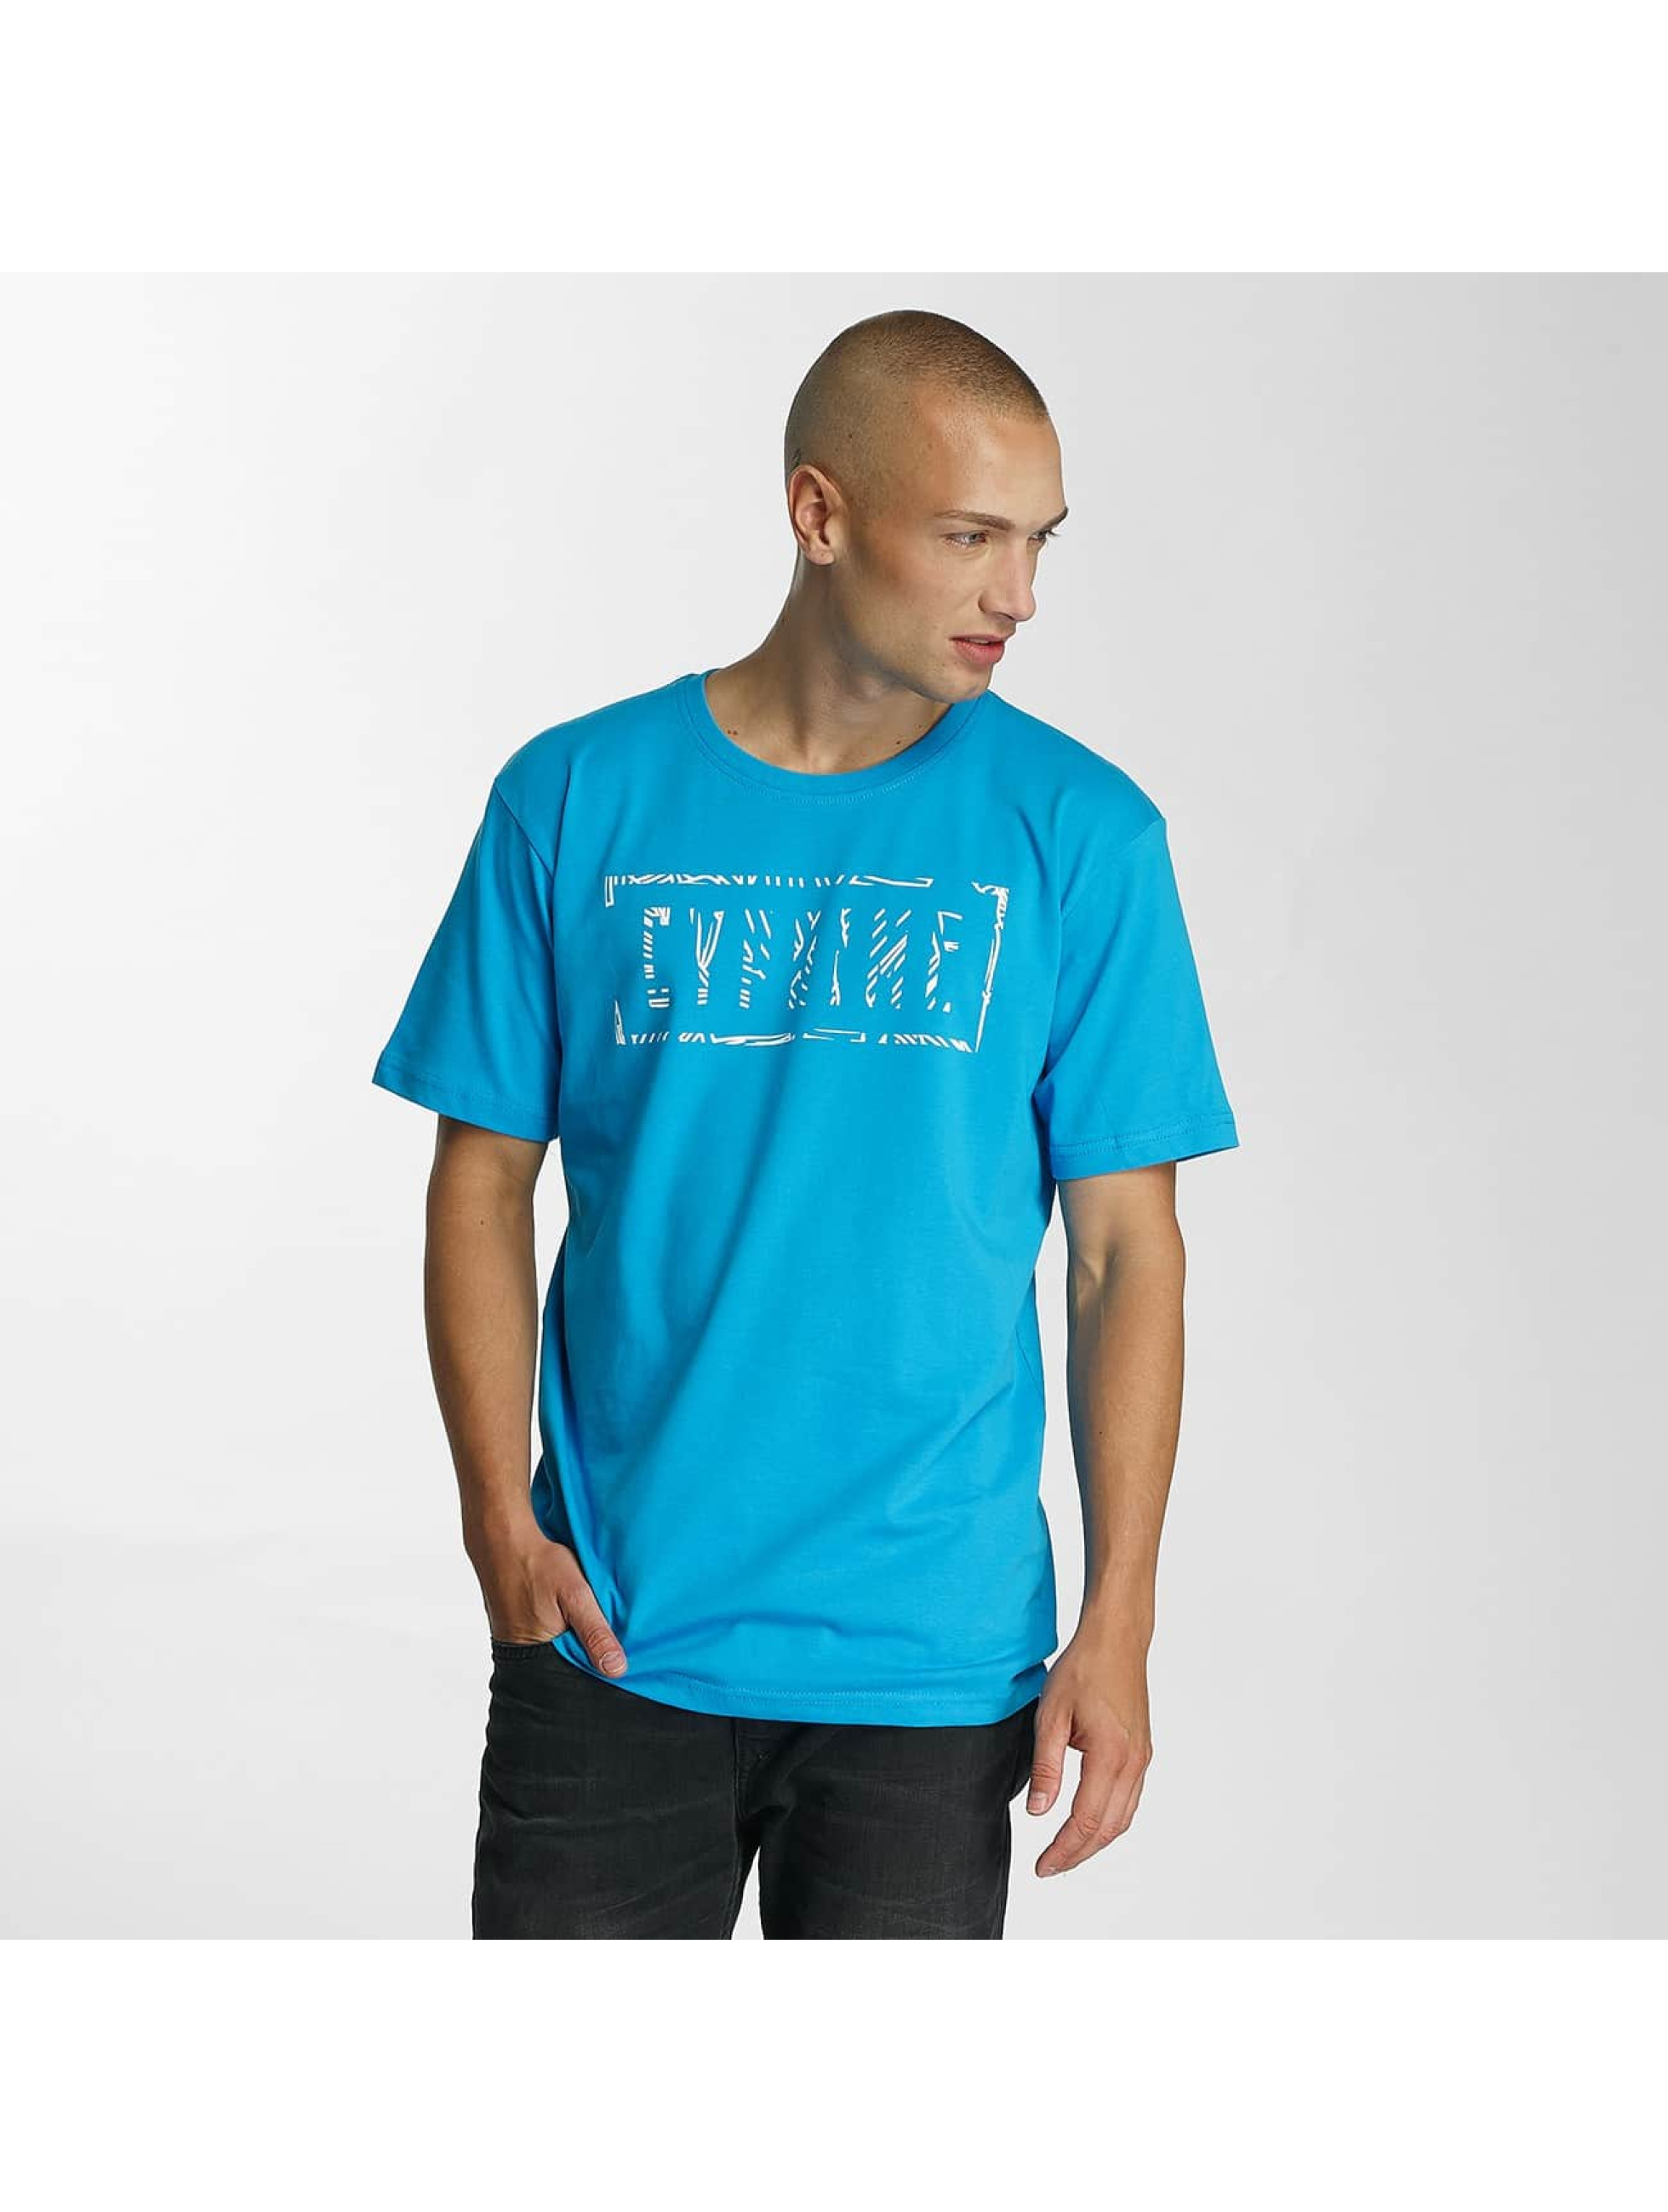 Cyprime / T-Shirt Cerium in turquoise 2XL